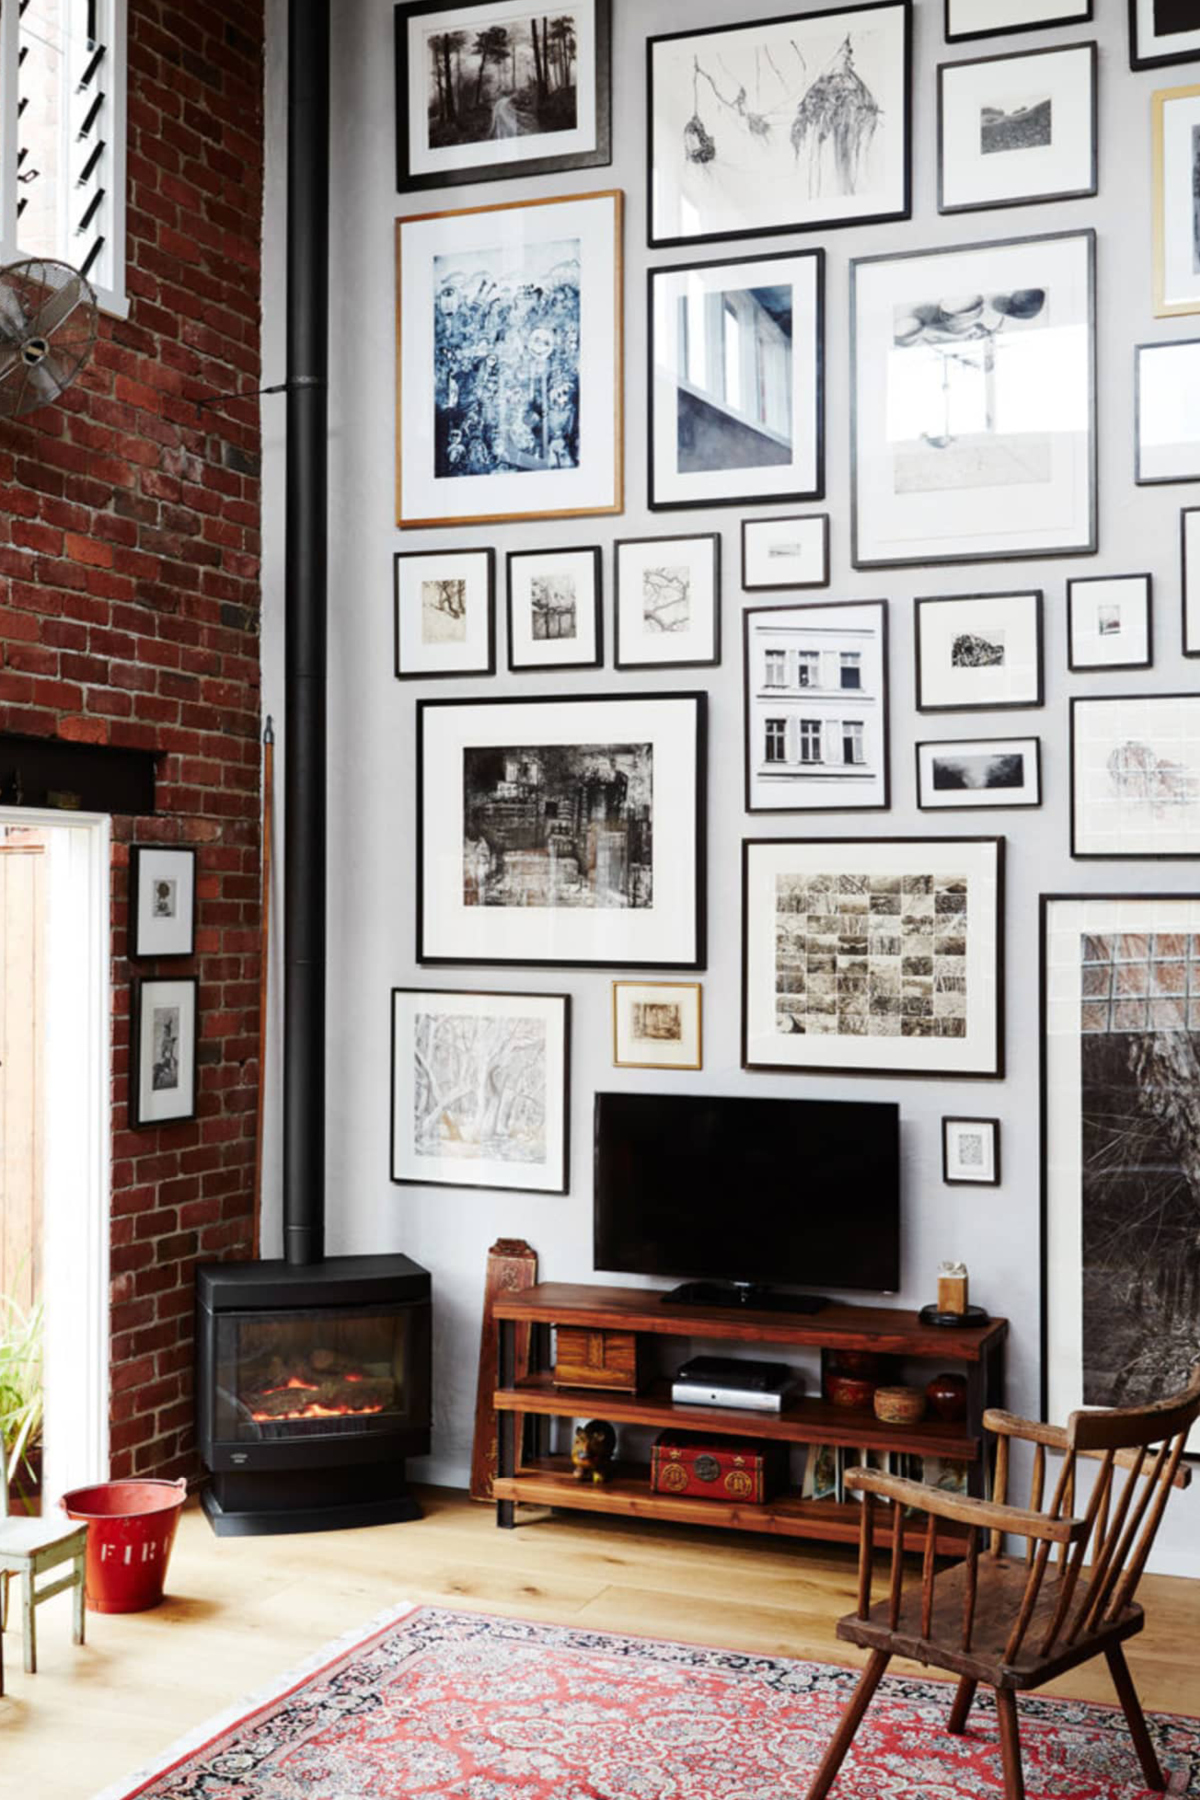 Gallery wall via Lucy Feagins The Design Files